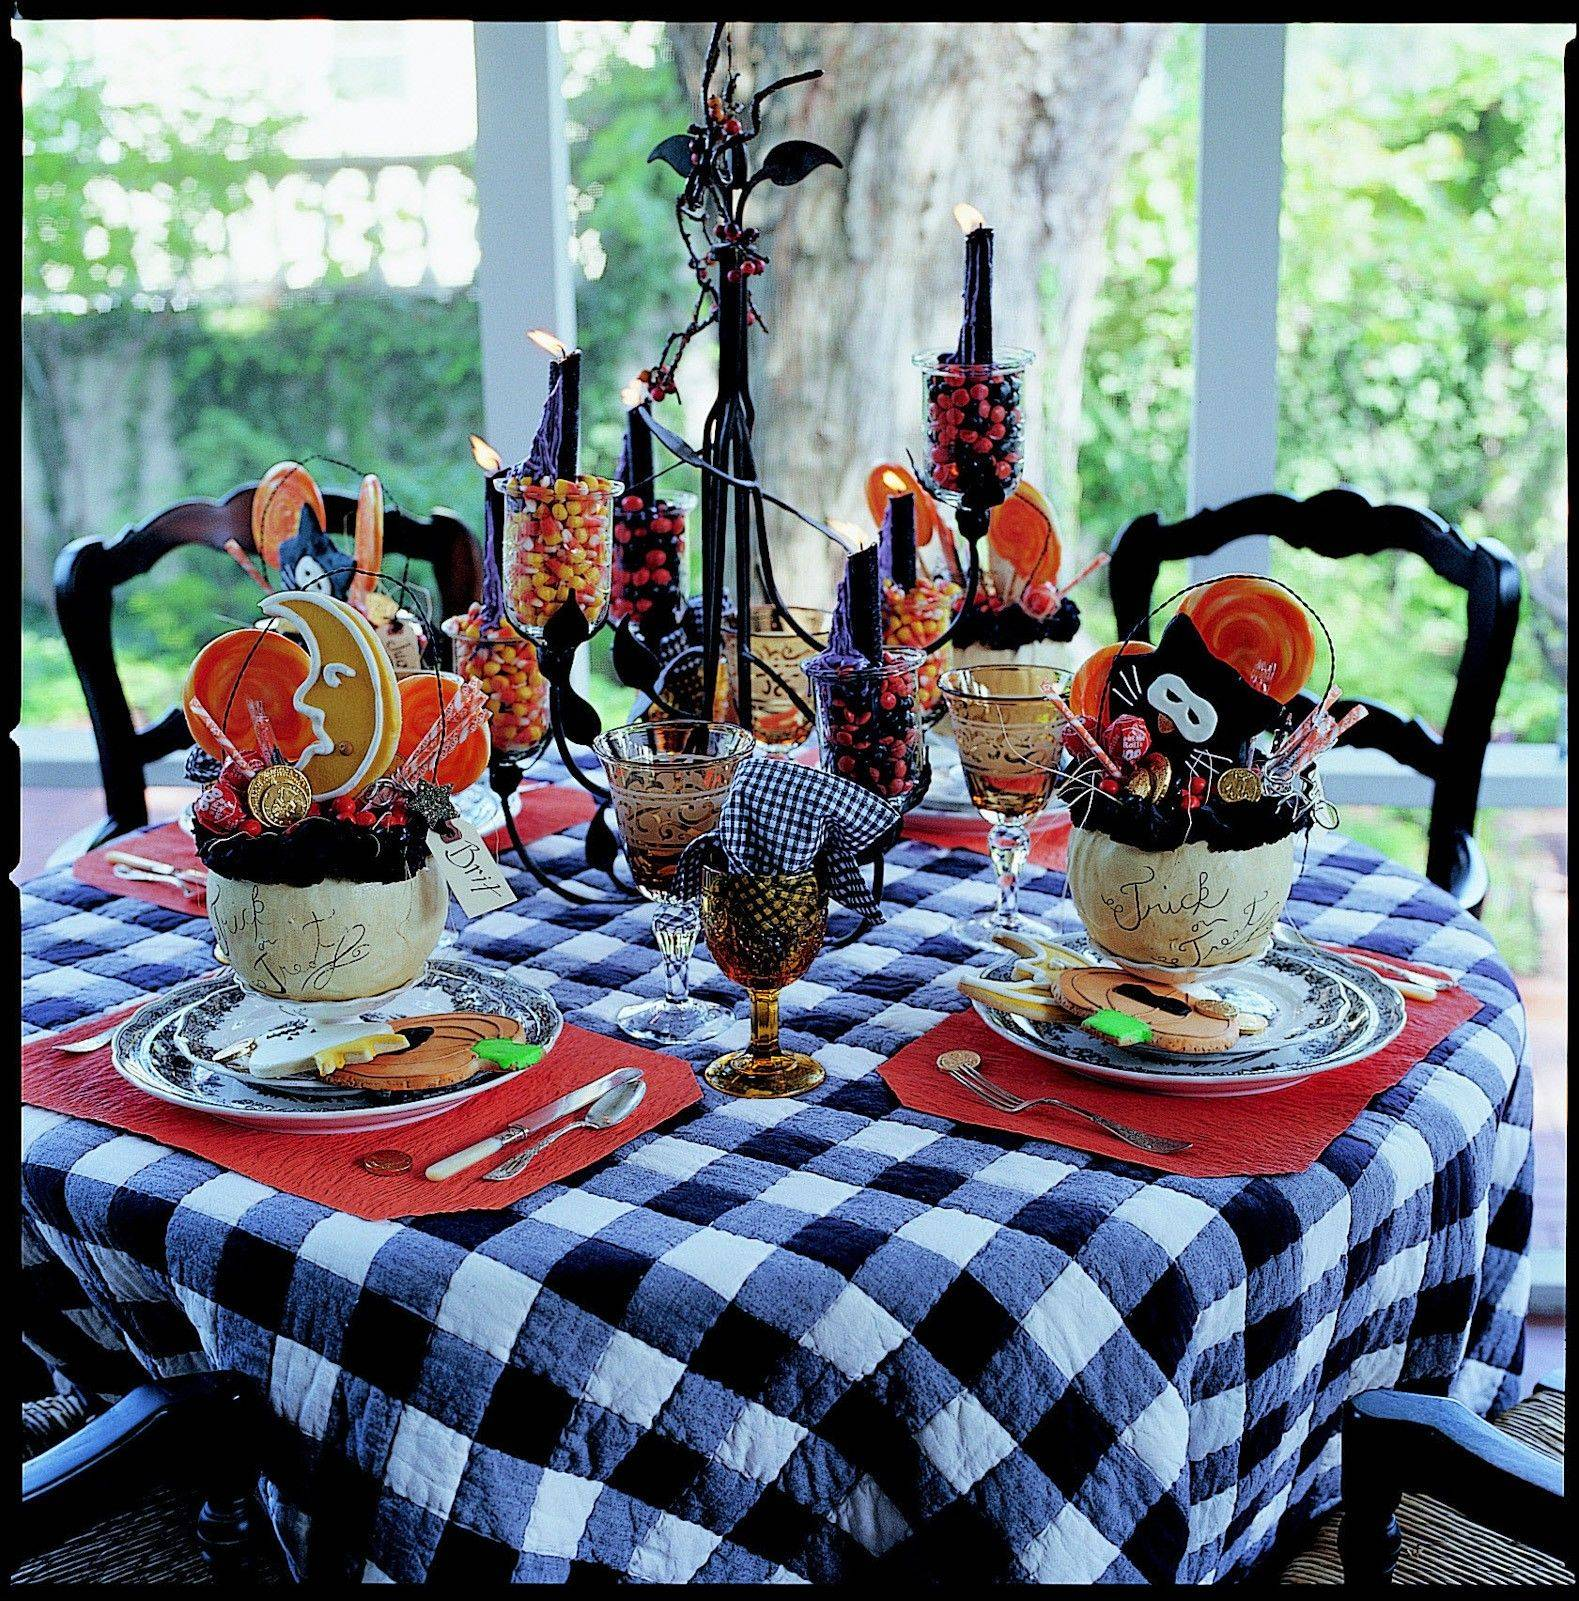 this table on the porch is set for a kidfriendly halloween party using